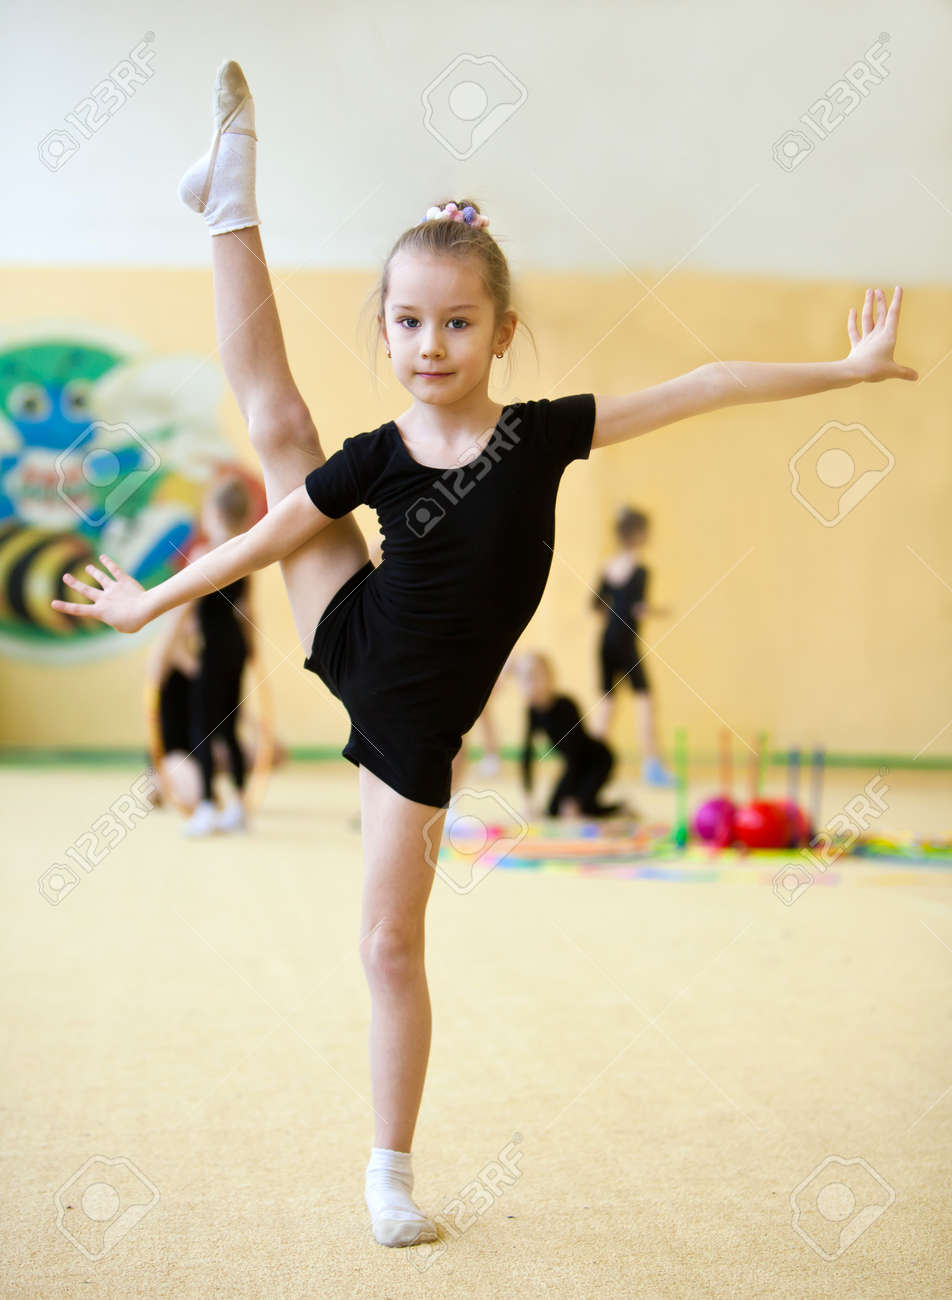 The Young Gymnast Stock Photo, Picture And Royalty Free Image ...young gymnast